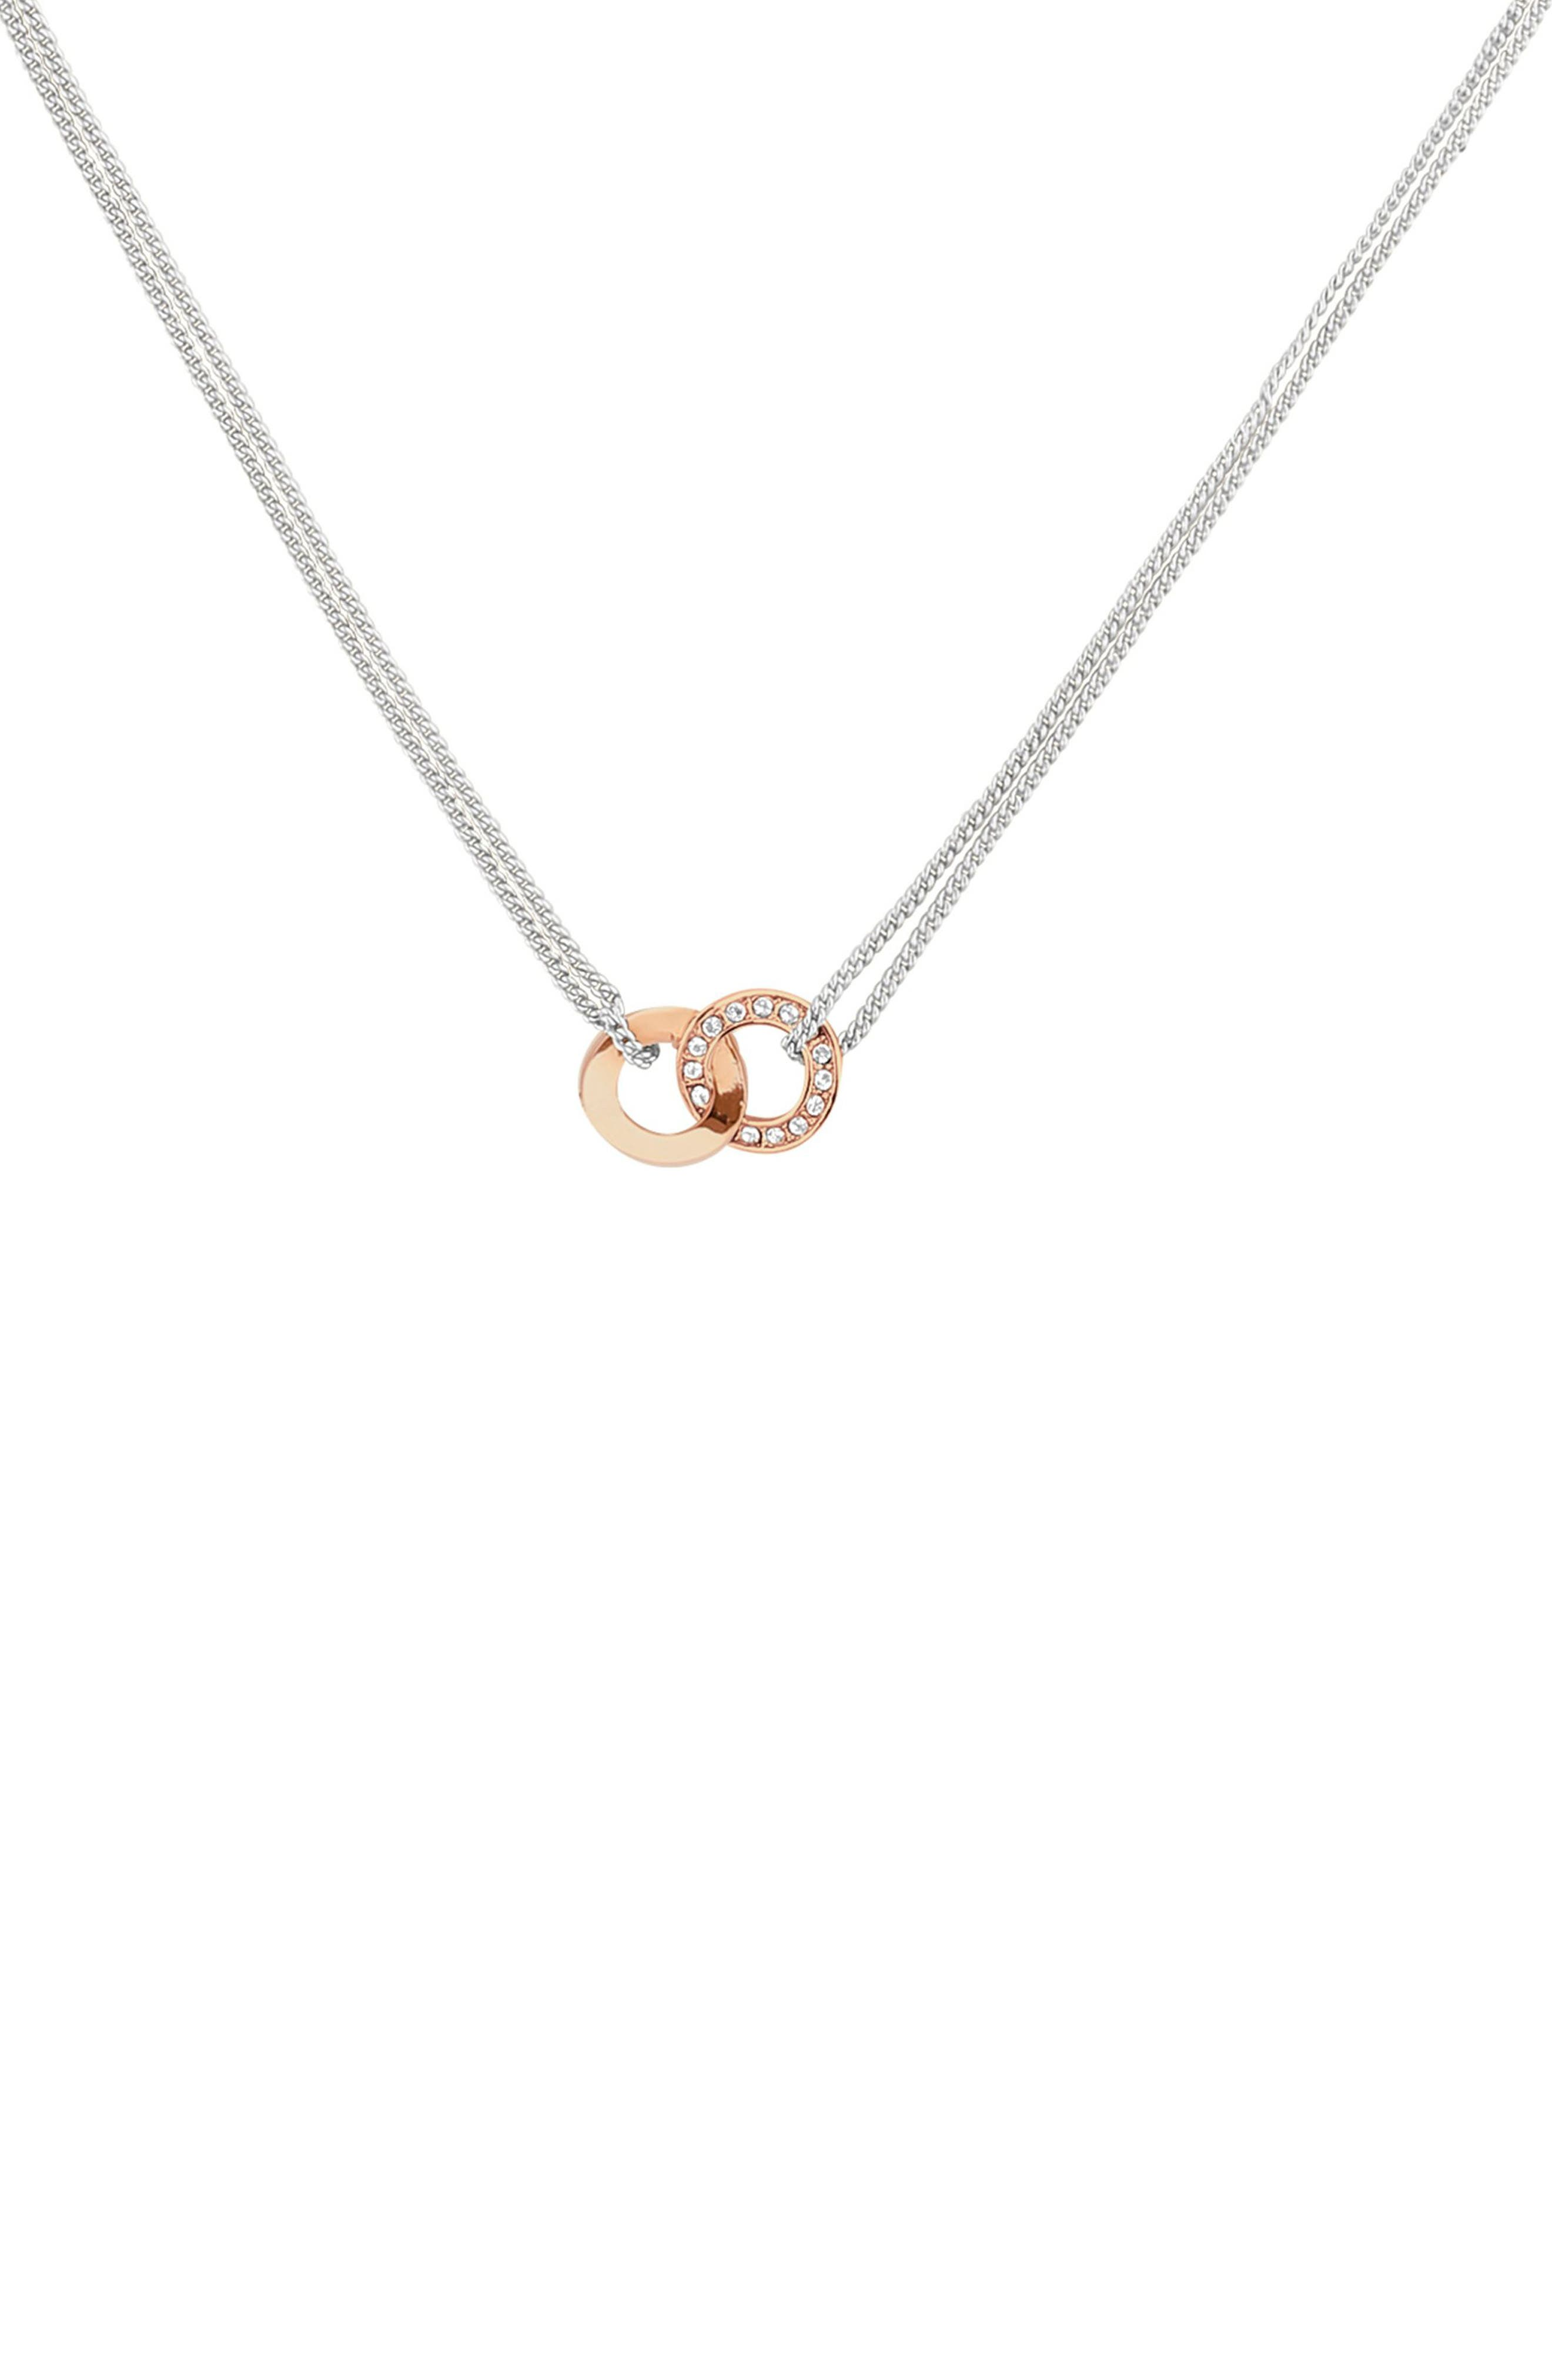 Interlocking Ring Dual Strand Necklace,                         Main,                         color, SILVER/ ROSE GOLD